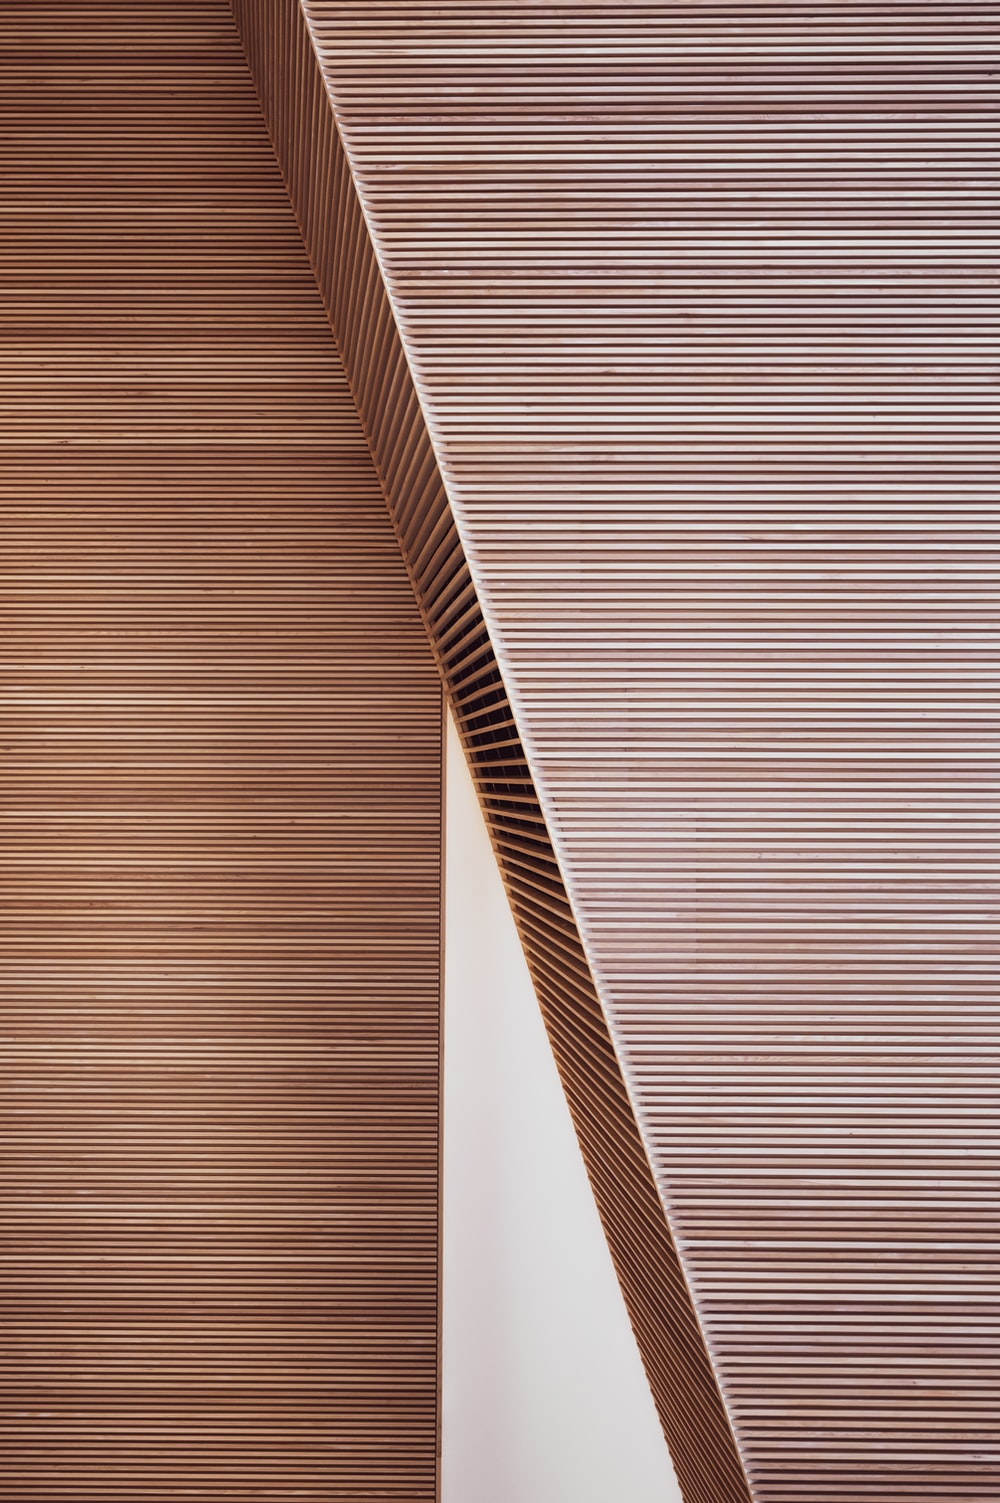 brown and white striped textile